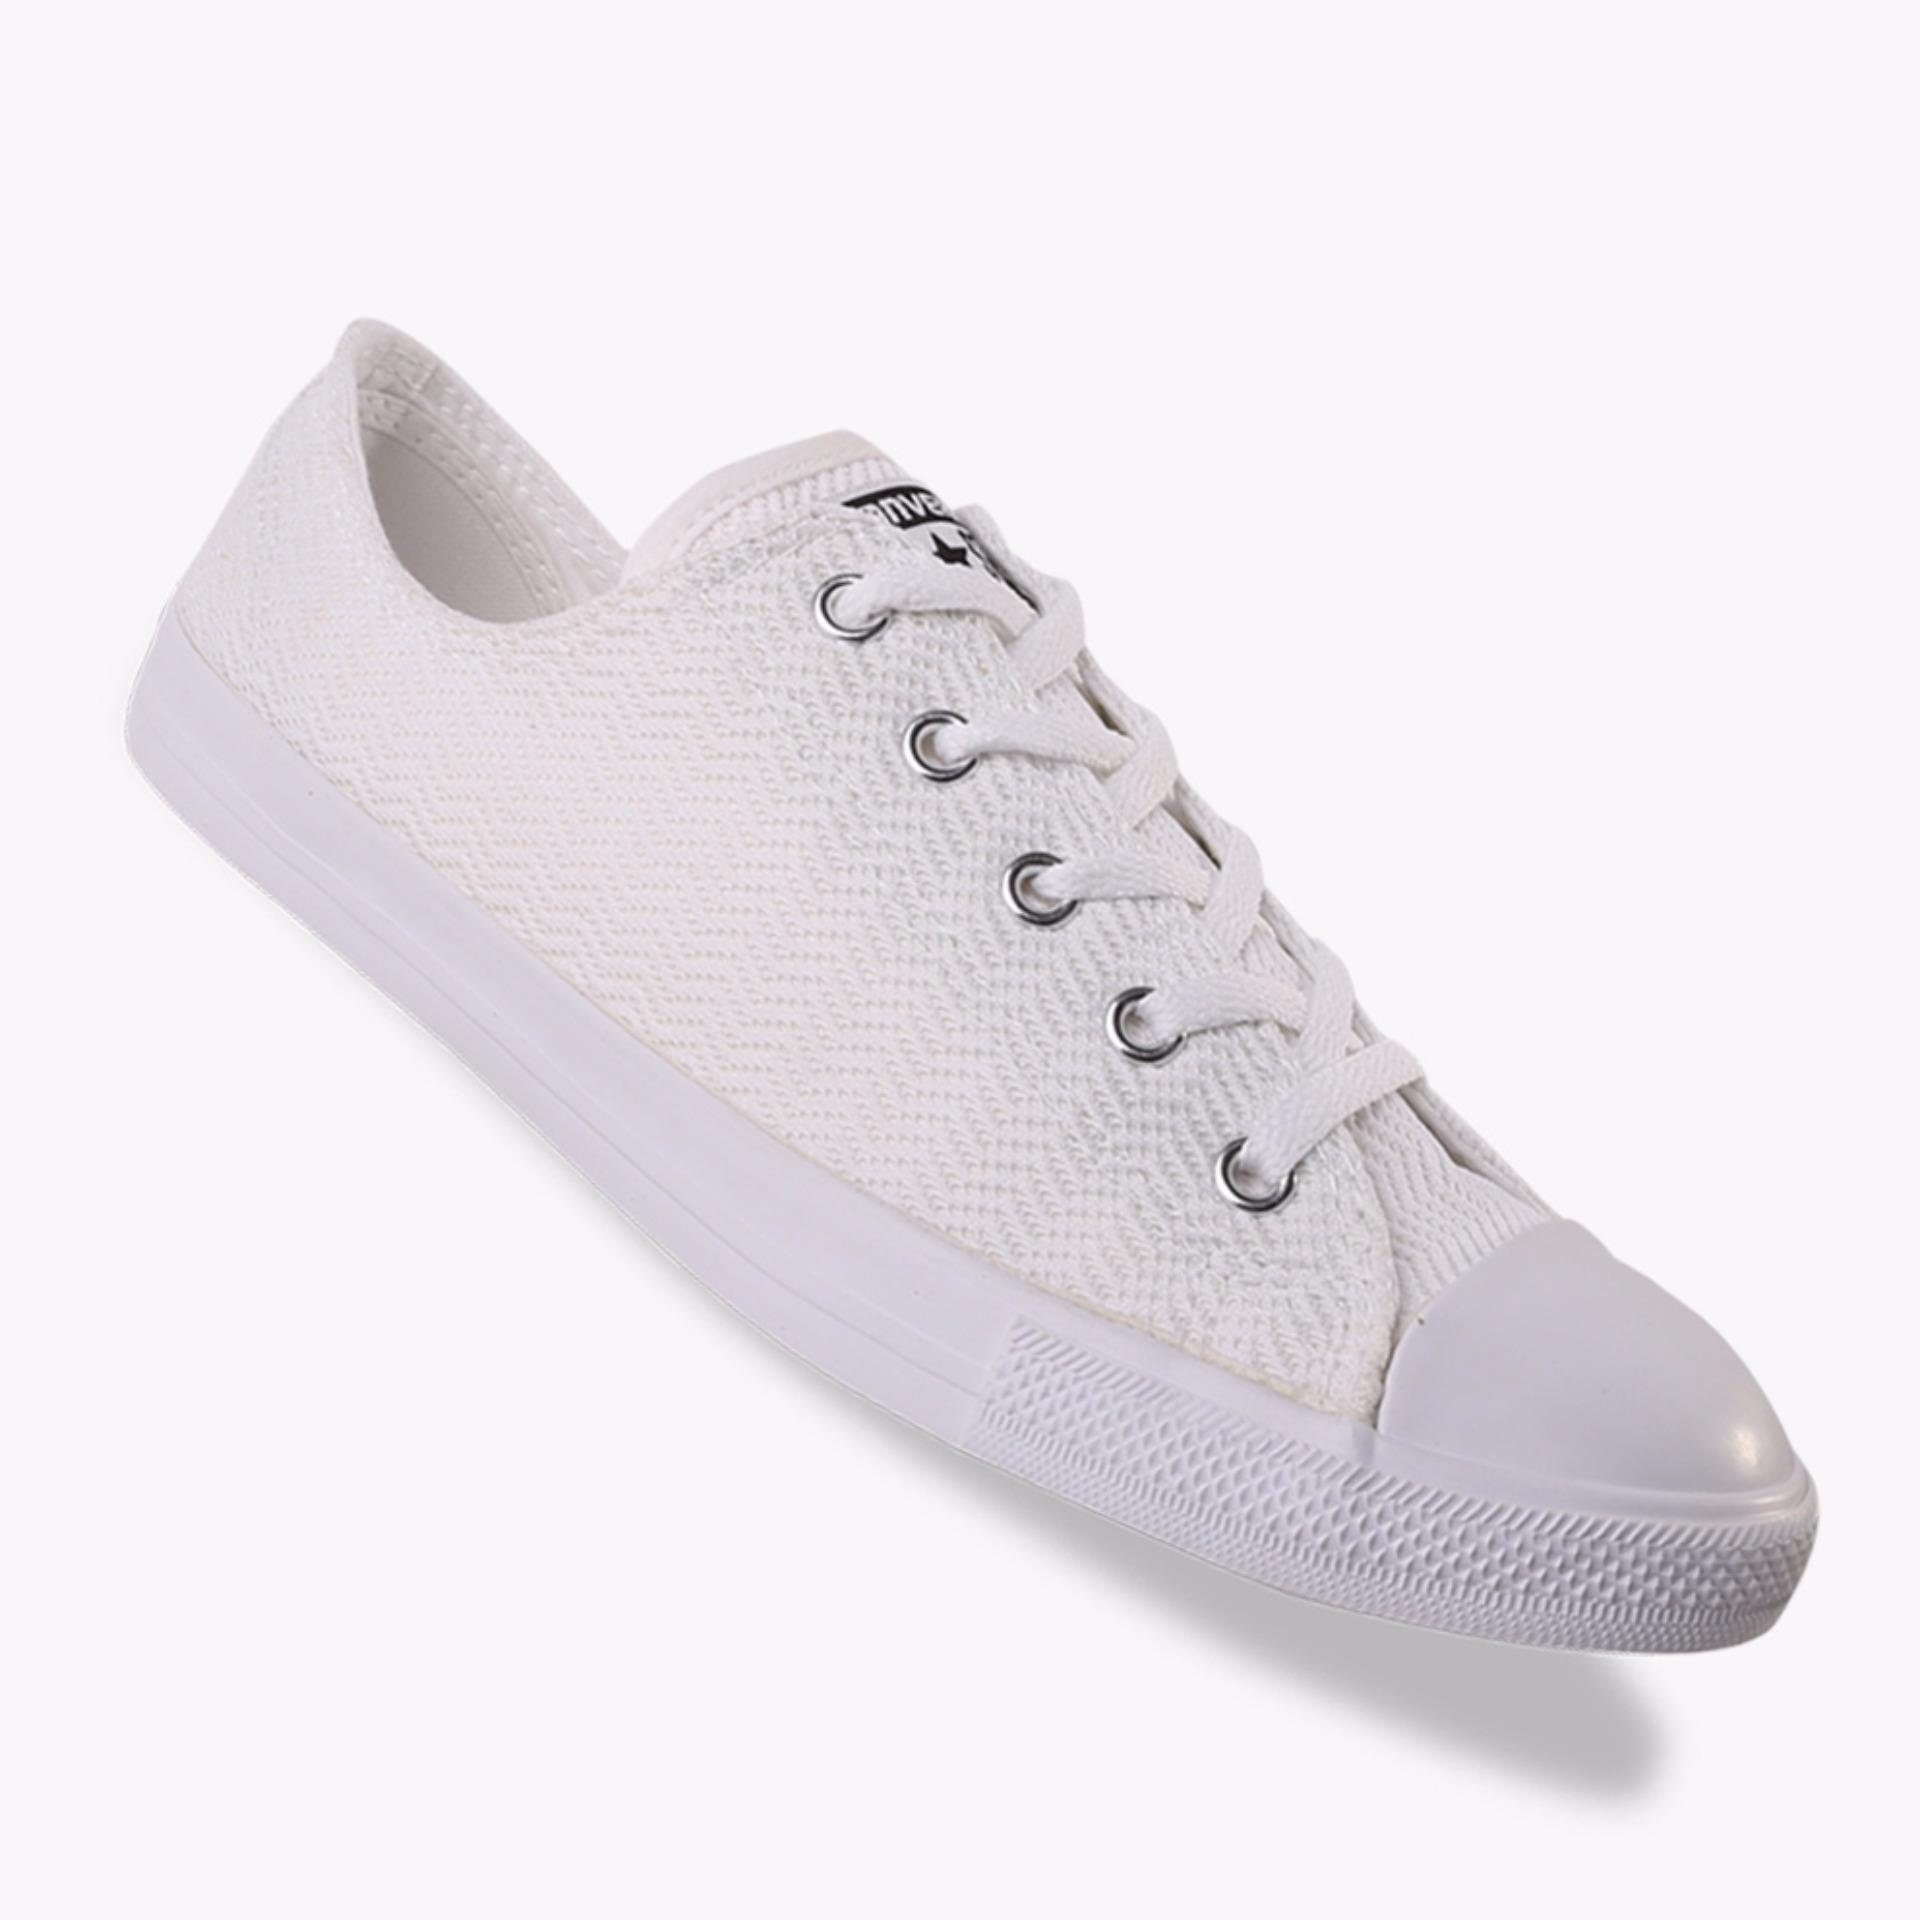 Harga Converse Chuck Taylor All Star Dainty Ox Women S Sneakers Shoes Putih Converse Ori